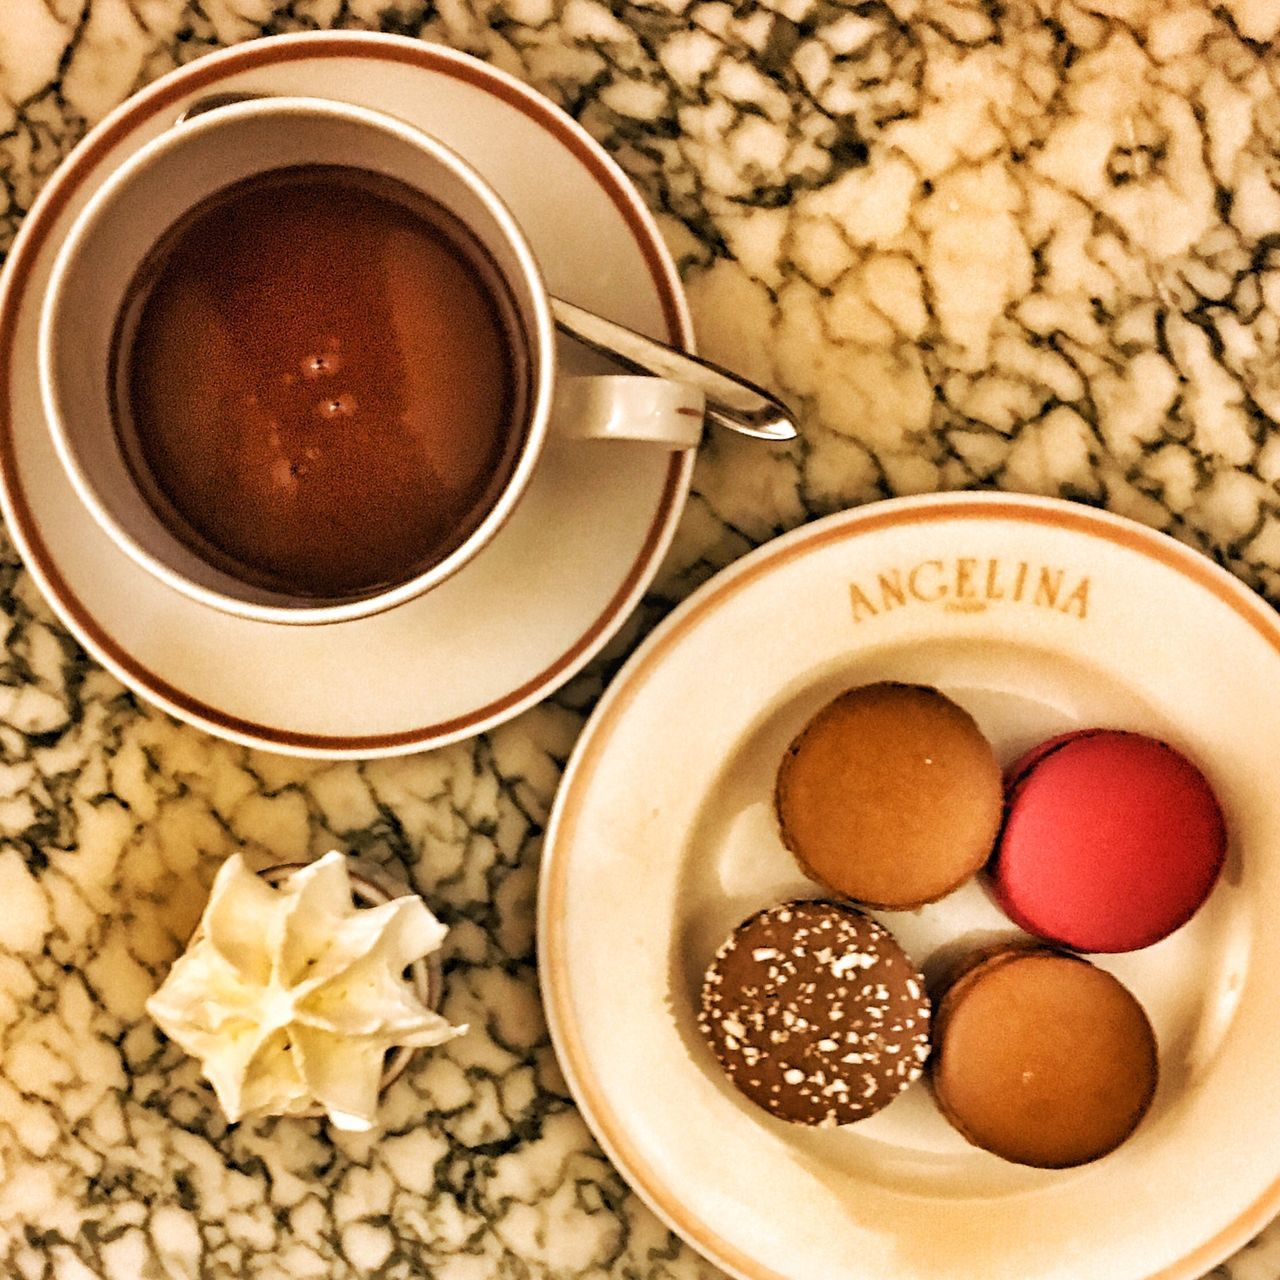 Angelina Hotchocolate Macarons Paris Check This Out Taking Photos Food Food Porn Posh